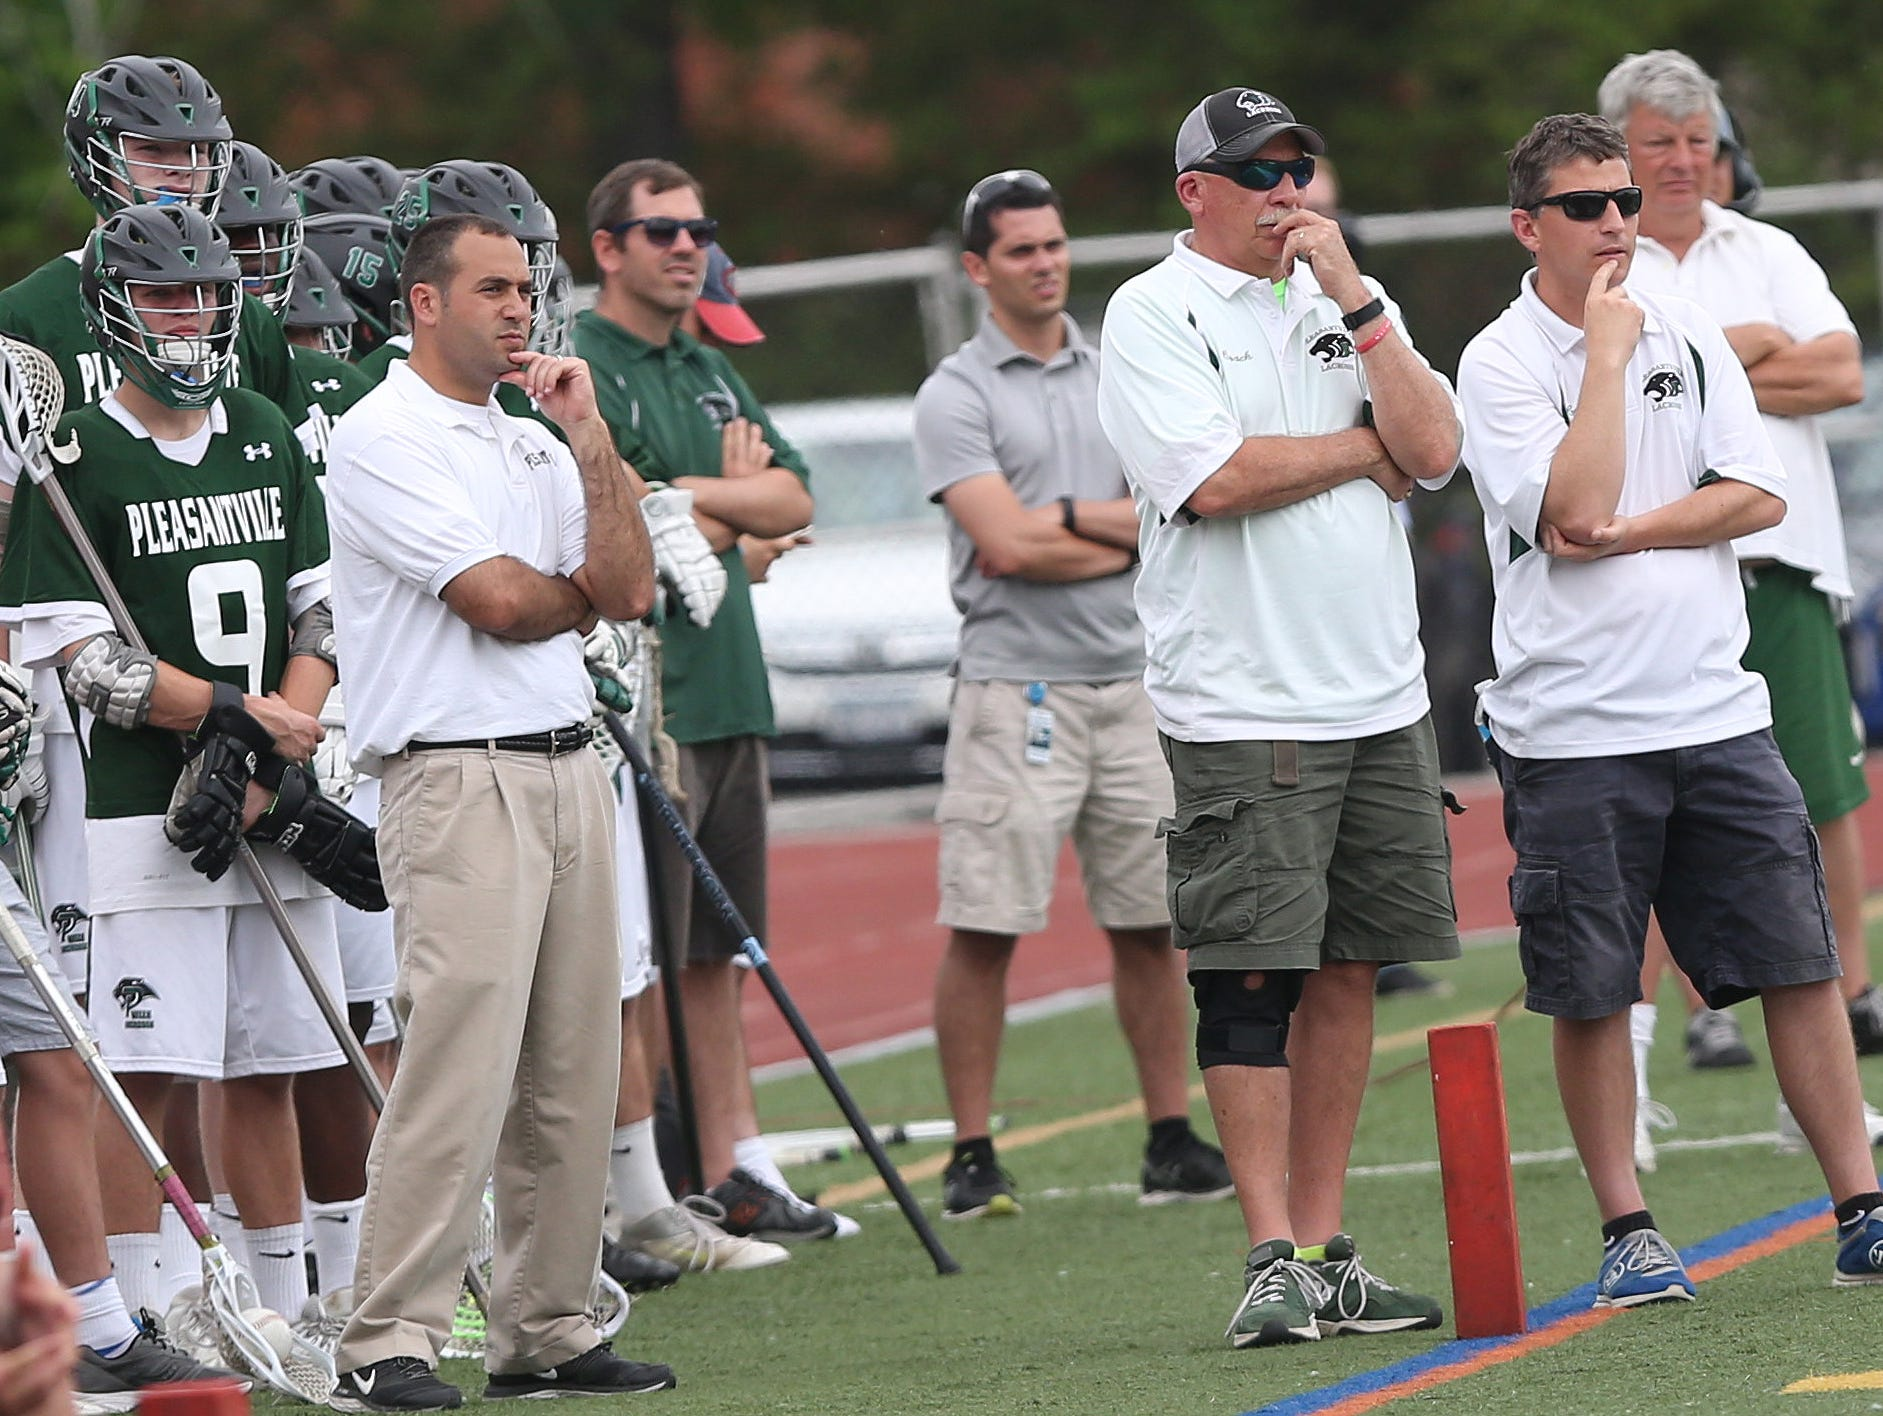 Pleasantville coach Chris Kear (right) watches as the Panthers defeated Rondout Valley in the state Class C regional lacrosse championship game at Dietz Stadium in Kingston June 4, 2016.